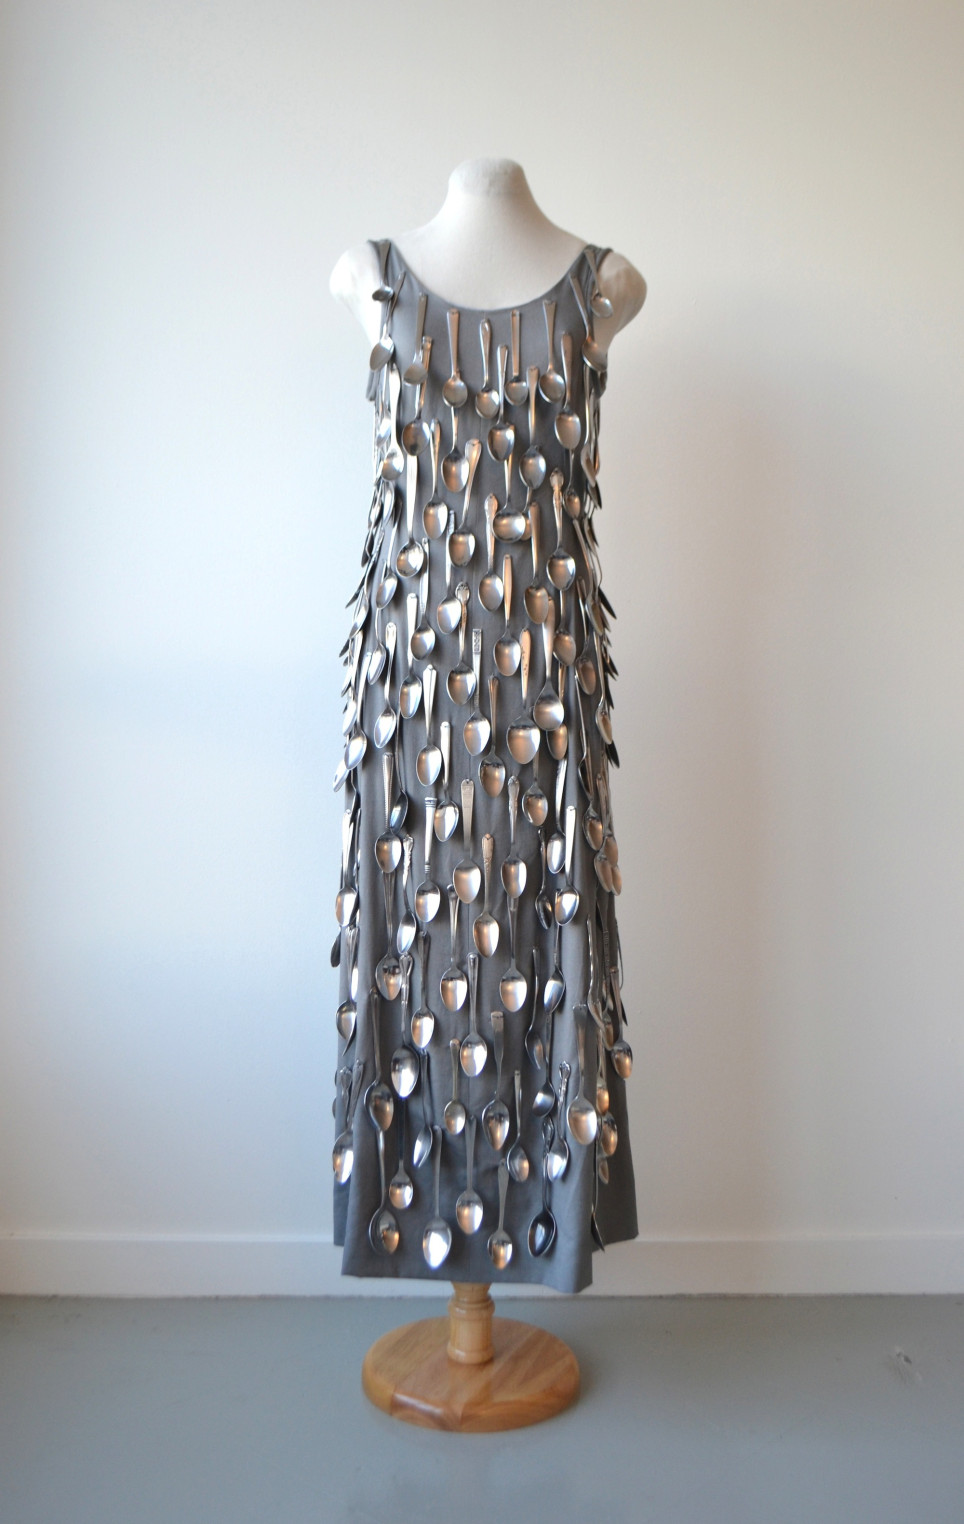 Spoon Dress, 2012 (action)